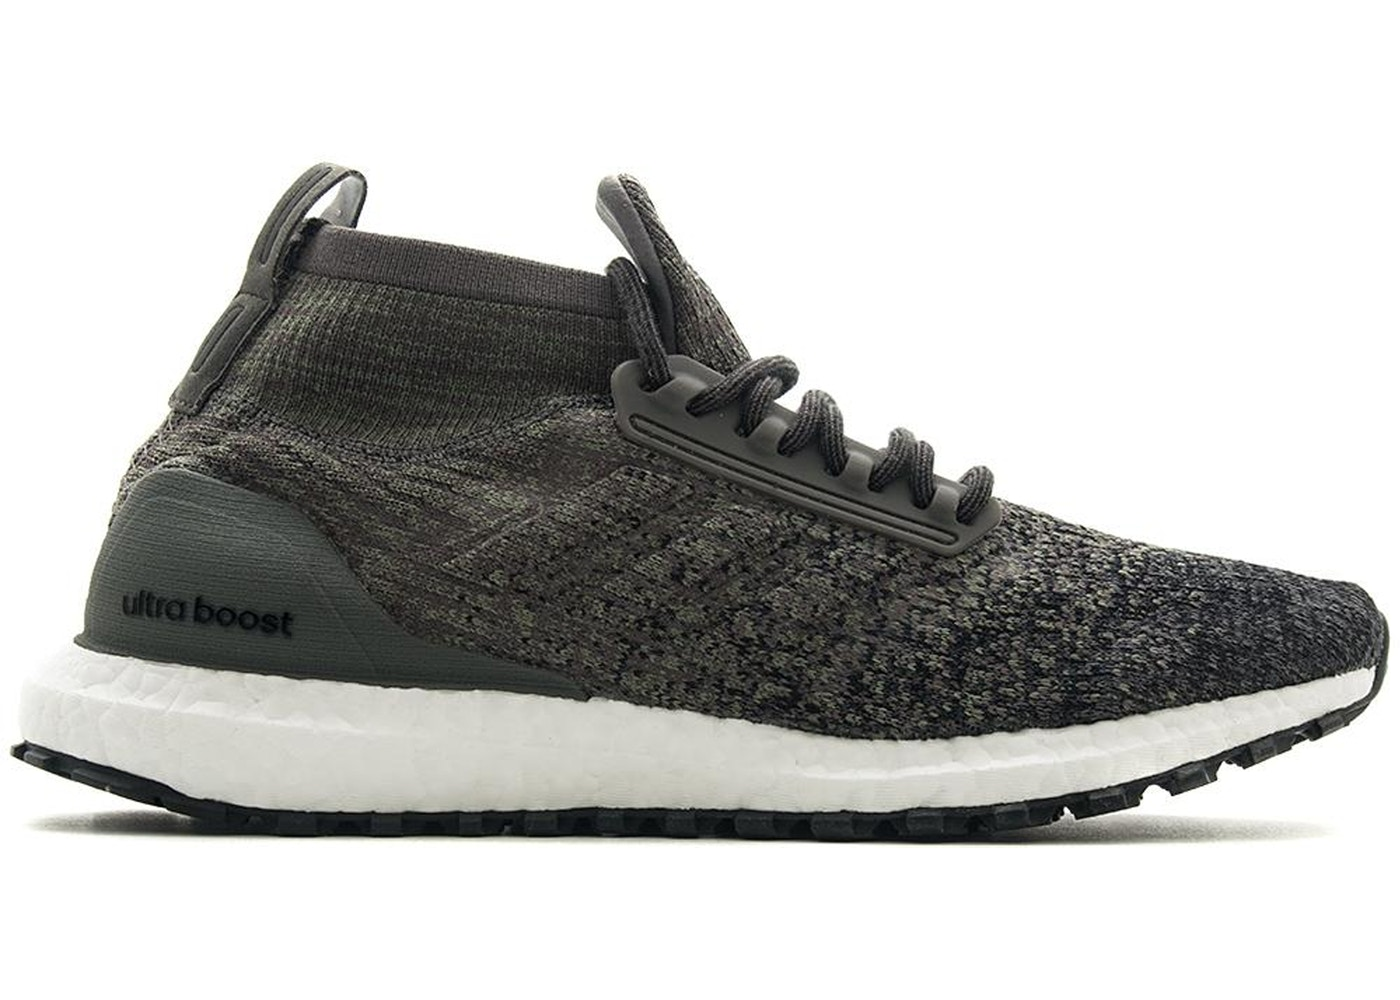 79b2a3e8057 adidas Ultra Boost Shoes - New Lowest Asks